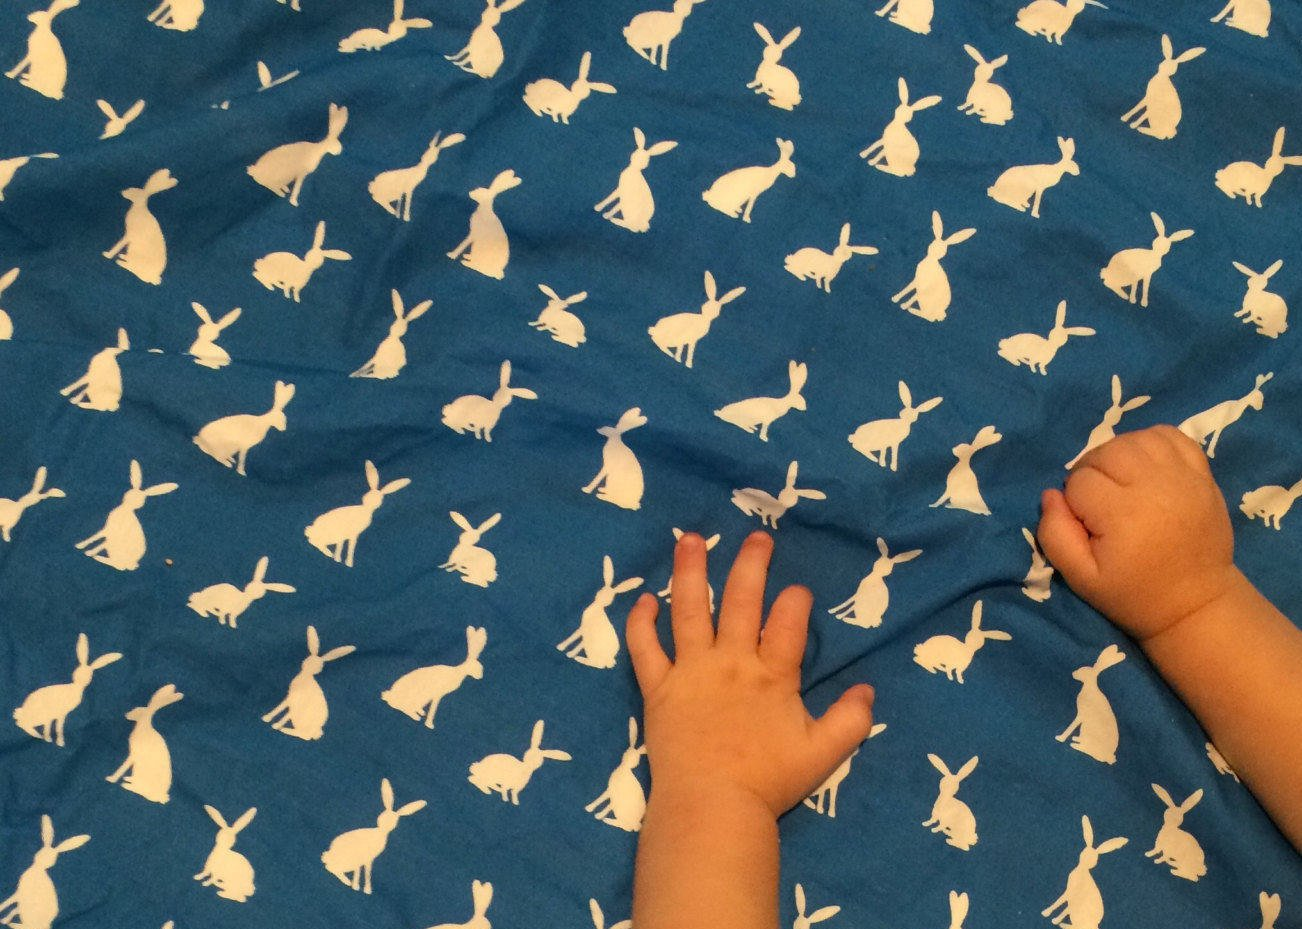 Bunny Rabbit Throw Blanket - Blue Receiving Blanket- Infant Swaddle Blanket- Crib Sheets- Baby Blanket- Woodland Nursery Gender Neutral - Dream Evergreen @DreamEvergreen